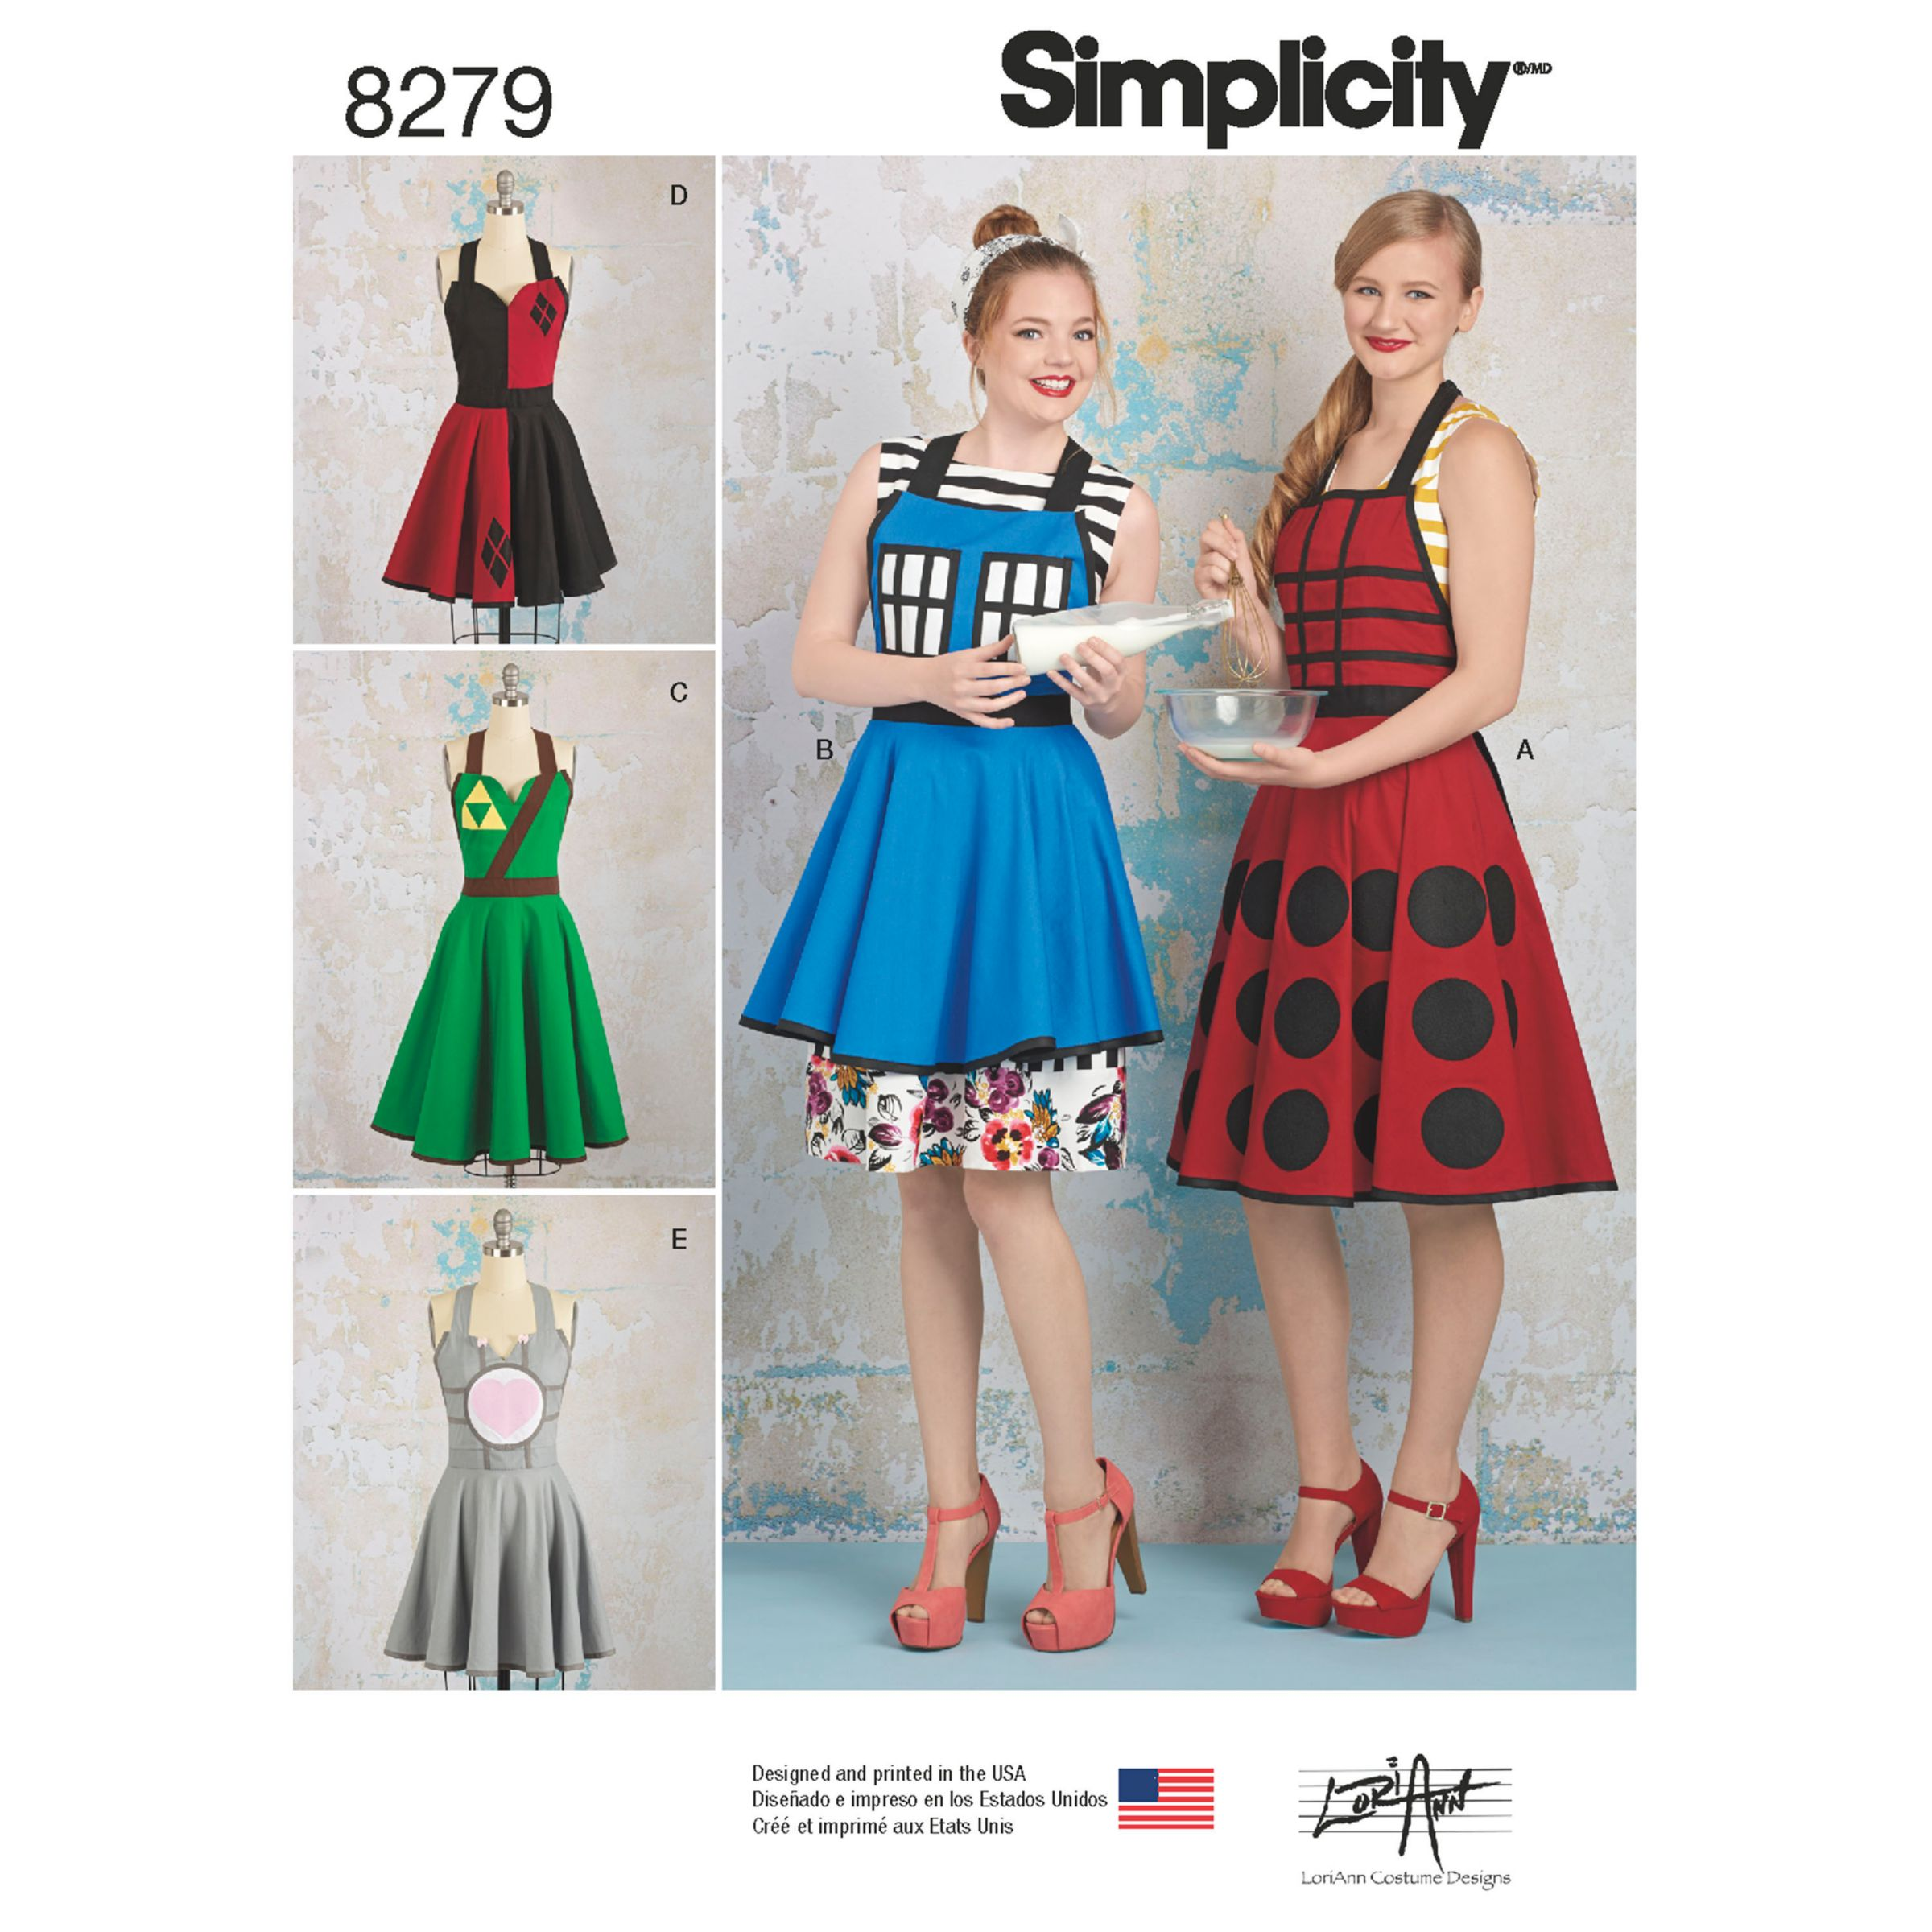 Simplicity Simplicity Unisex Aprons from Lori Ann Costume Designs Sewing Pattern, 8279, A